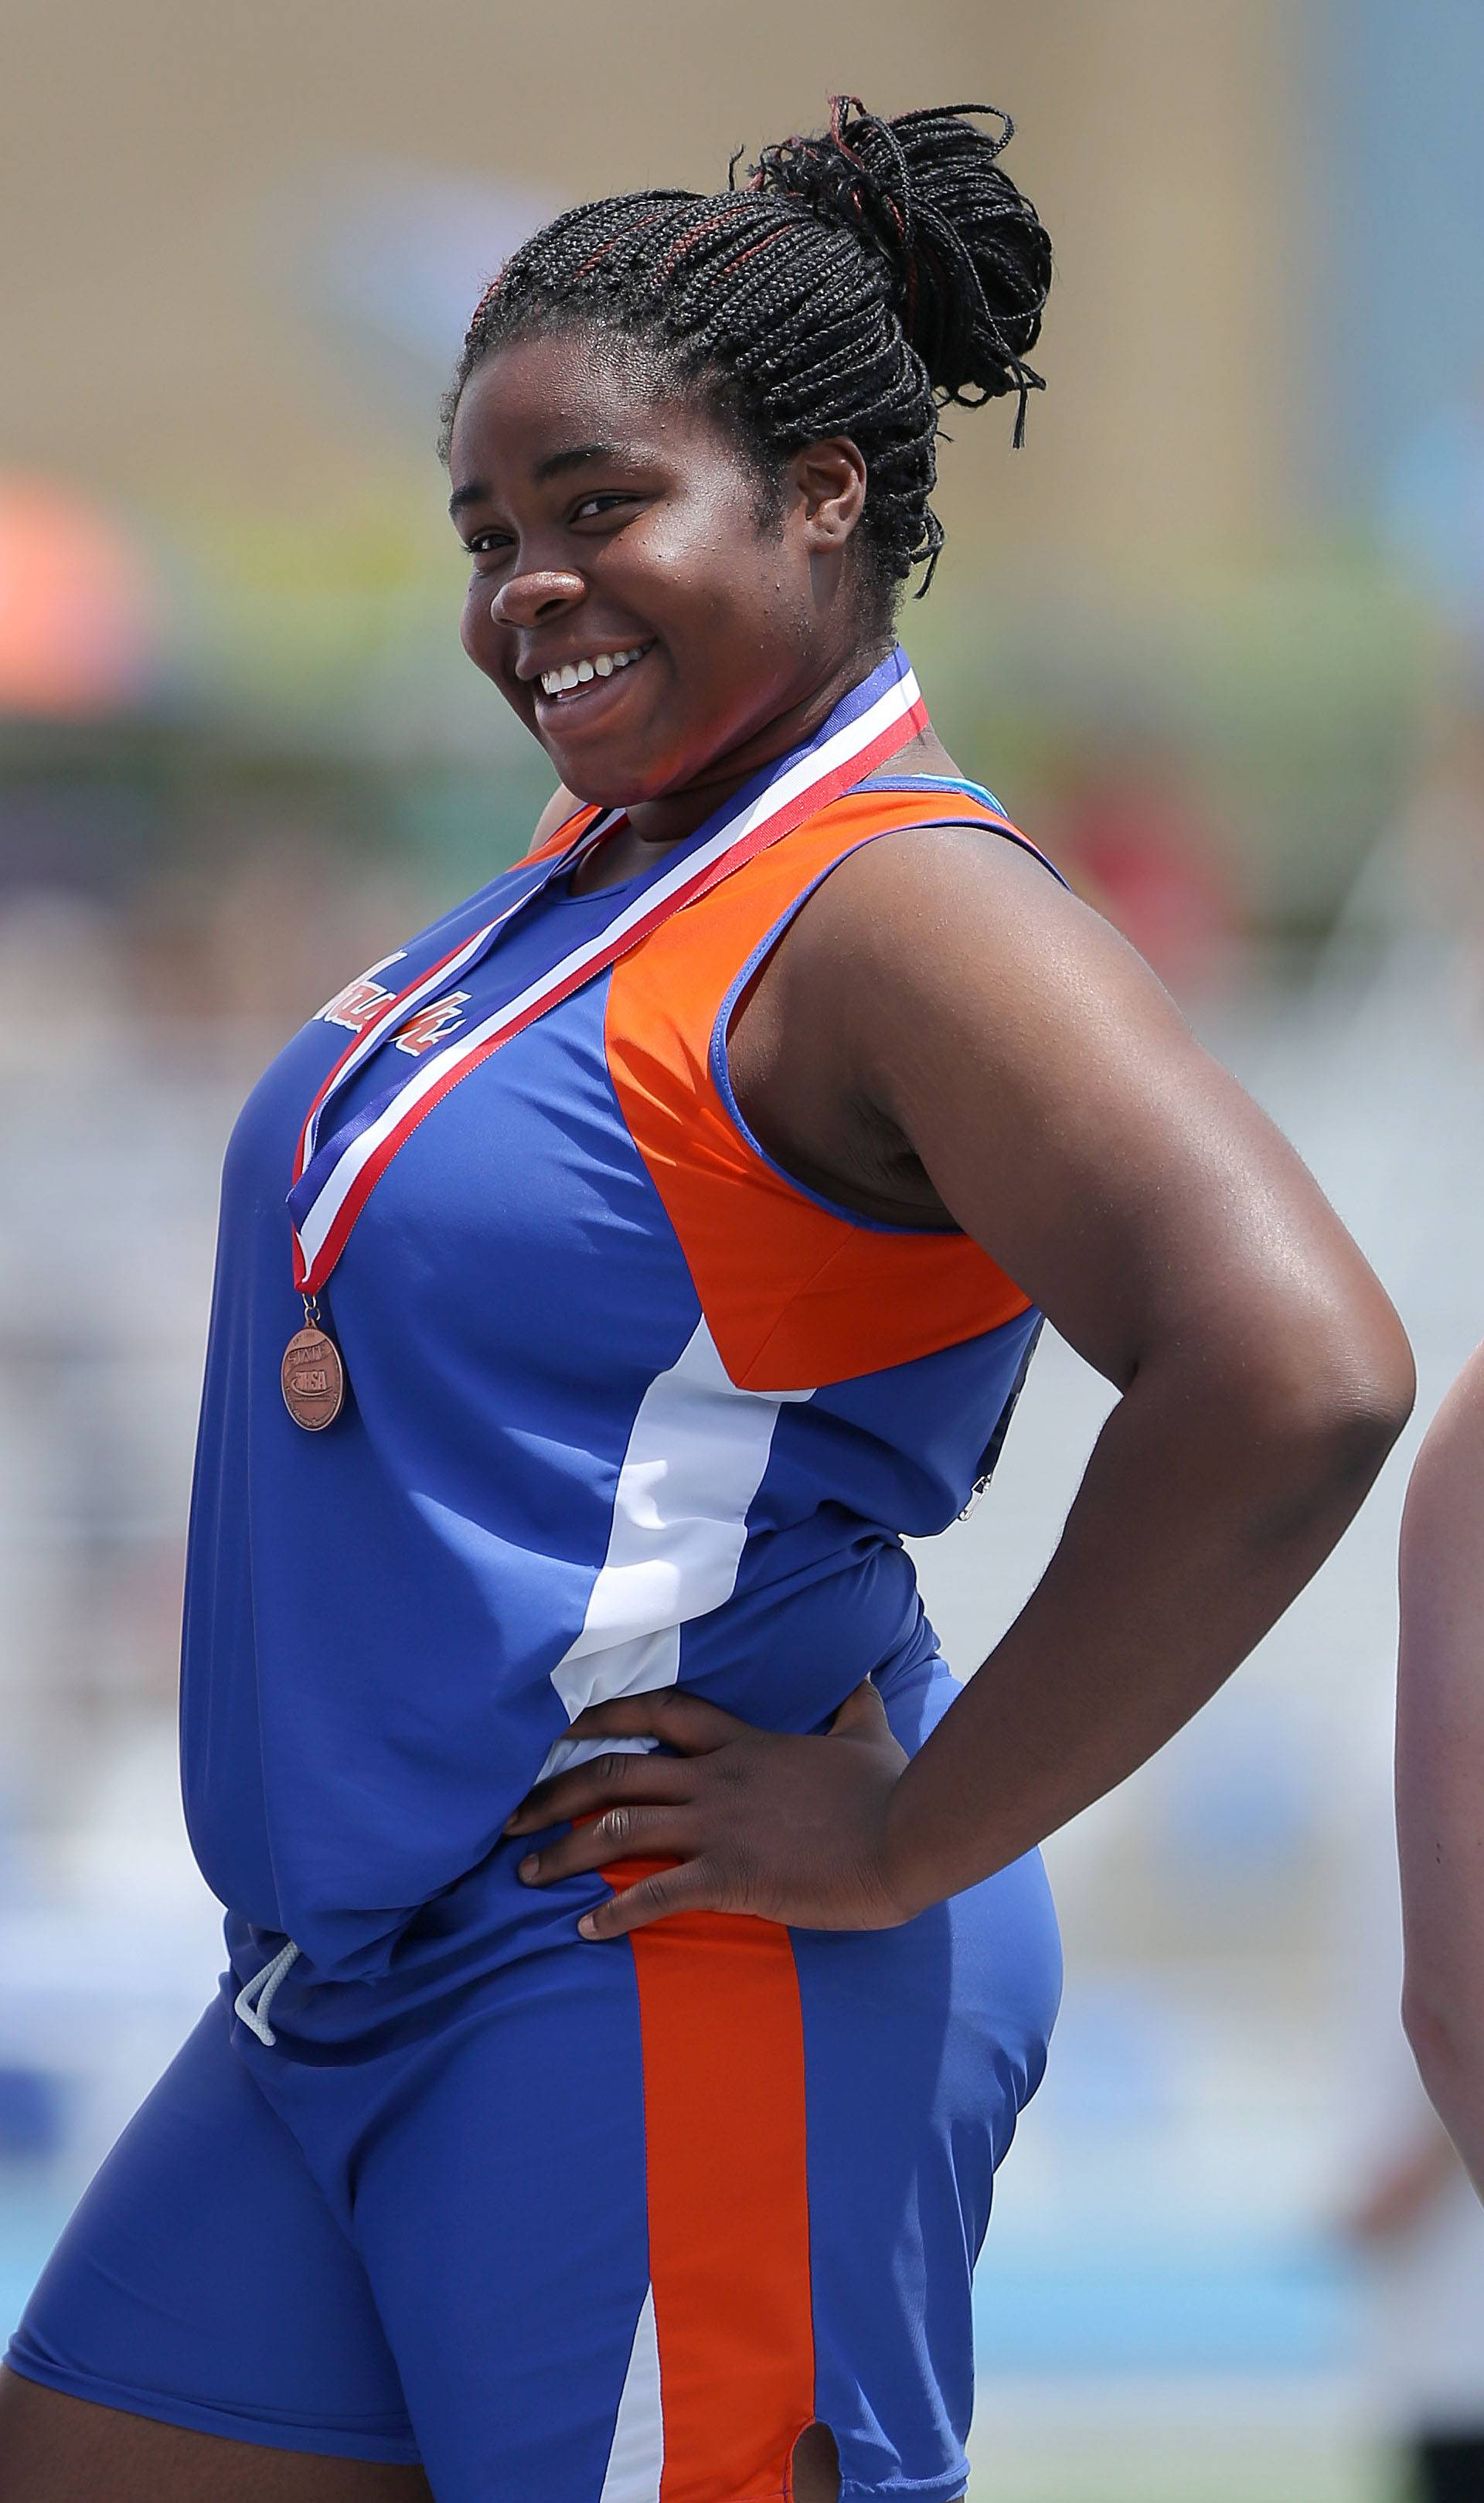 Hoffman Estates' Banke Oginni poses with her shot put medal during the girls track and field state finals at Eastern Illinois University in Charleston Saturday.